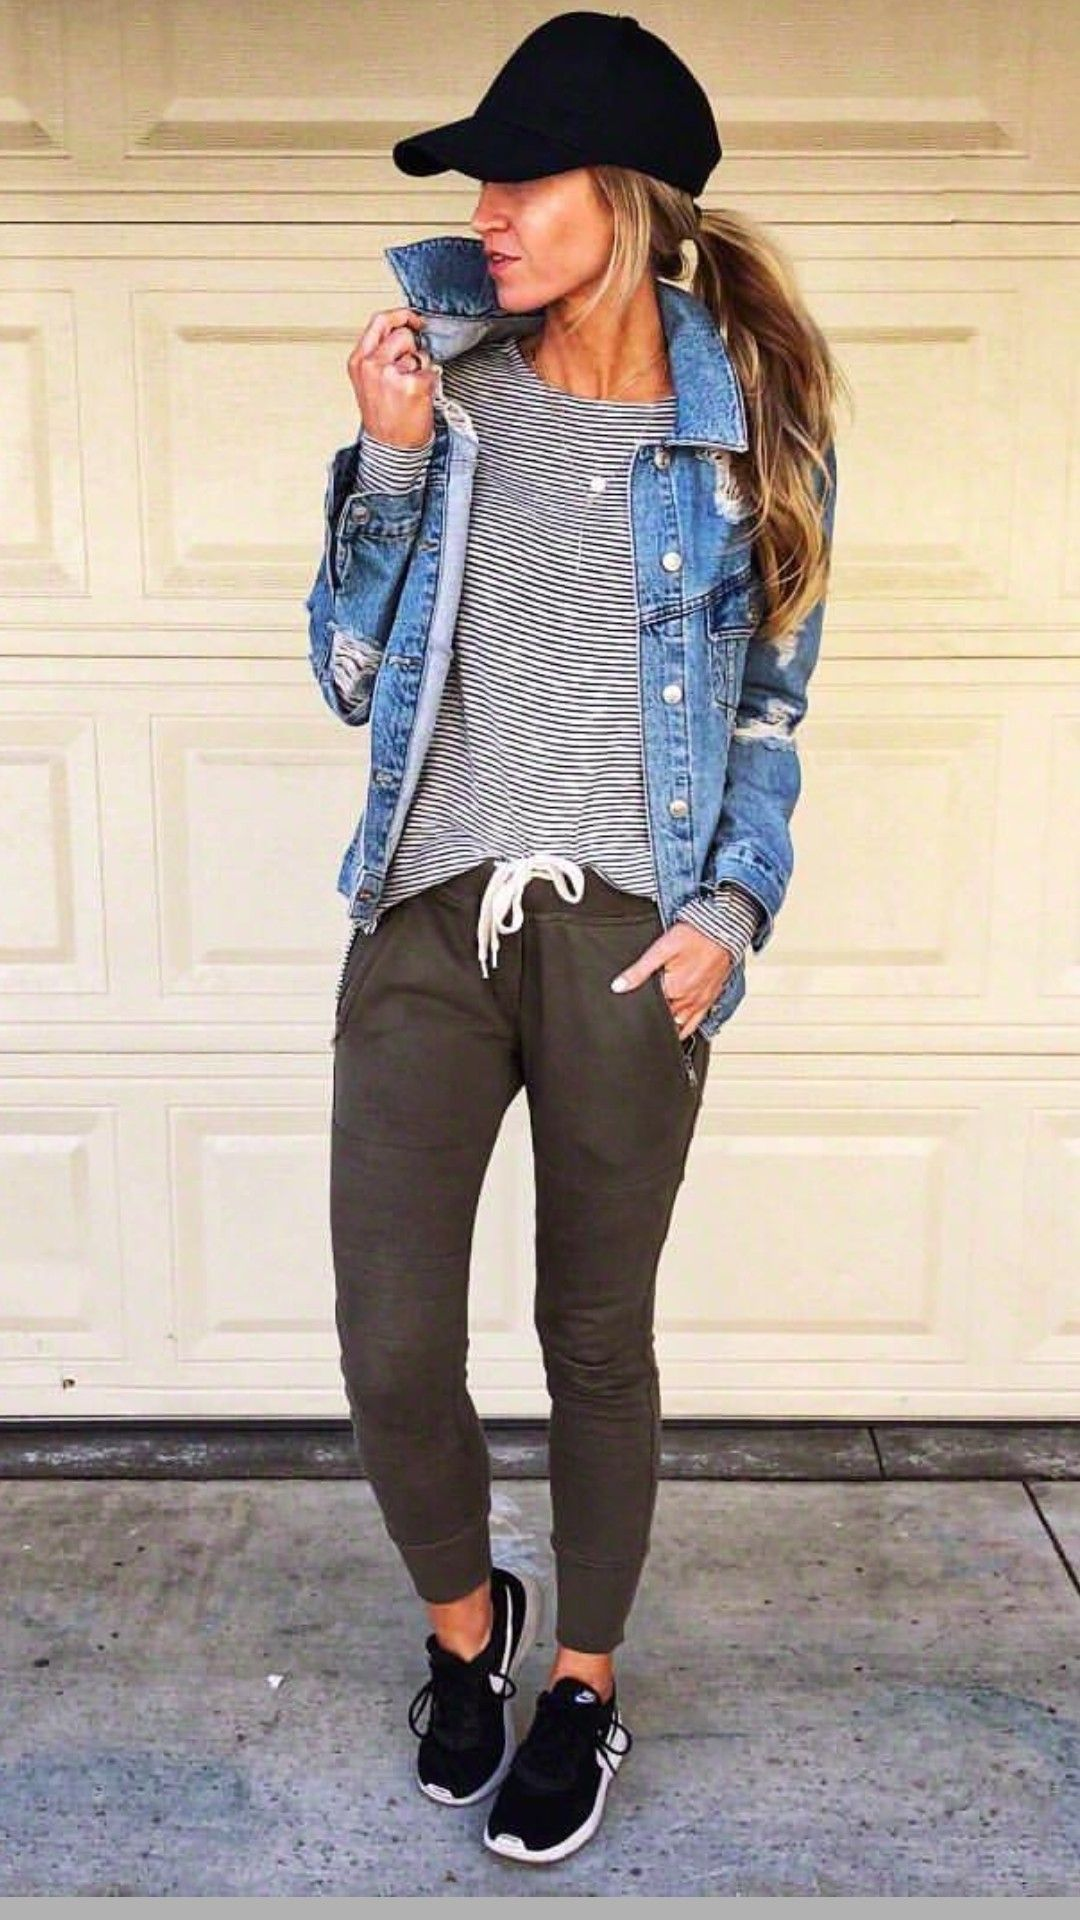 Pin By Michelle Gourley On Fashion Casual Weekend Outfit Spring Outfits Casual Weekend Outfit [ 1920 x 1080 Pixel ]